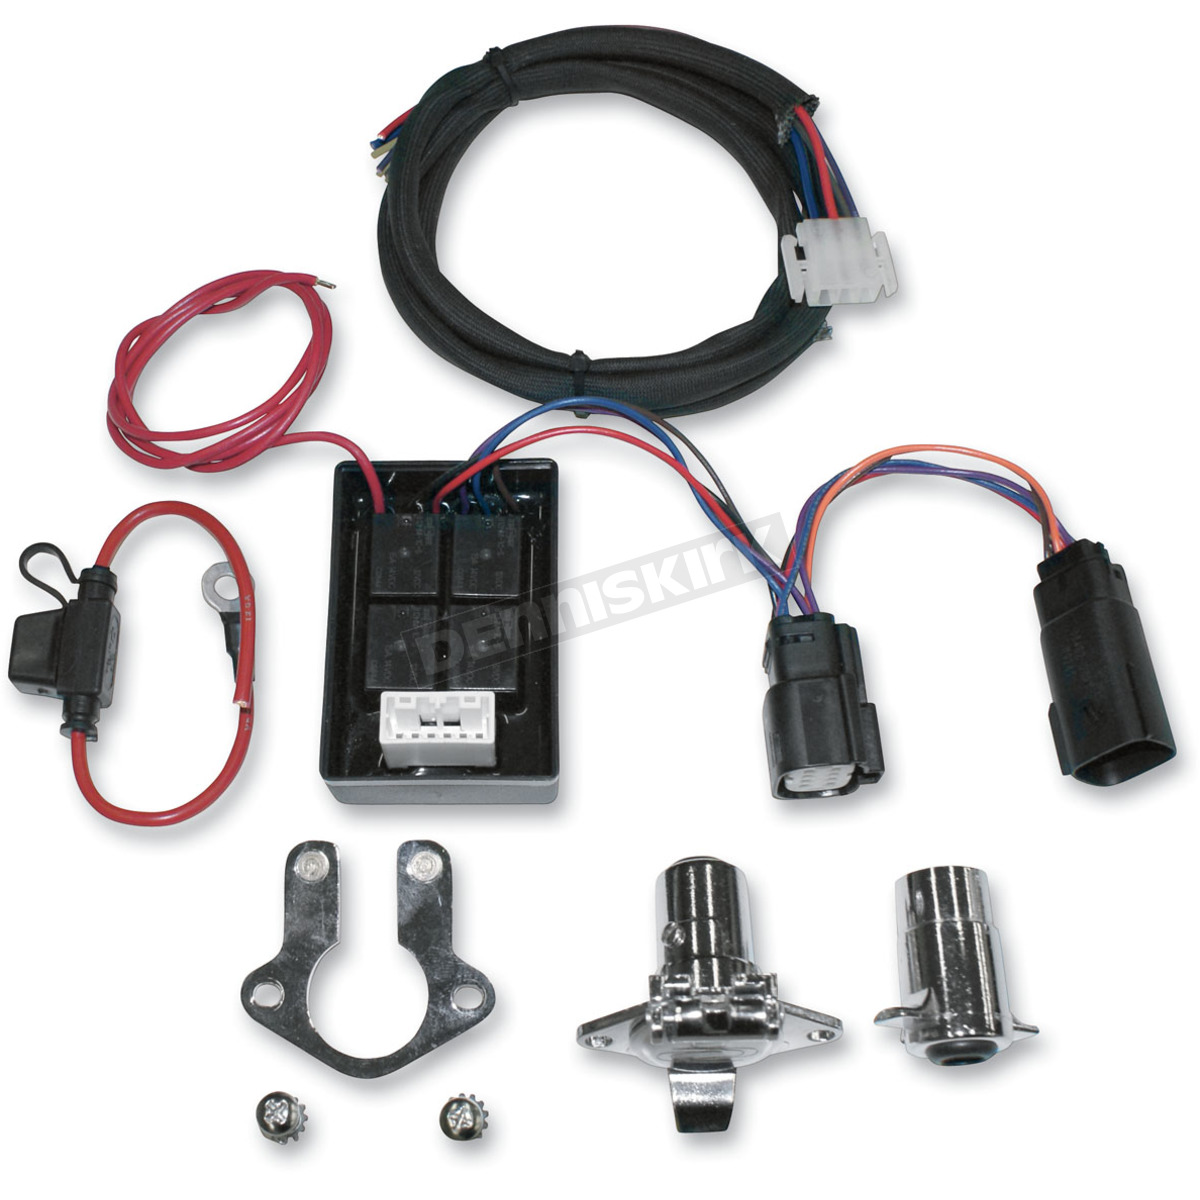 39020084 khrome werks plug and play trailer wiring connector kit w isolator